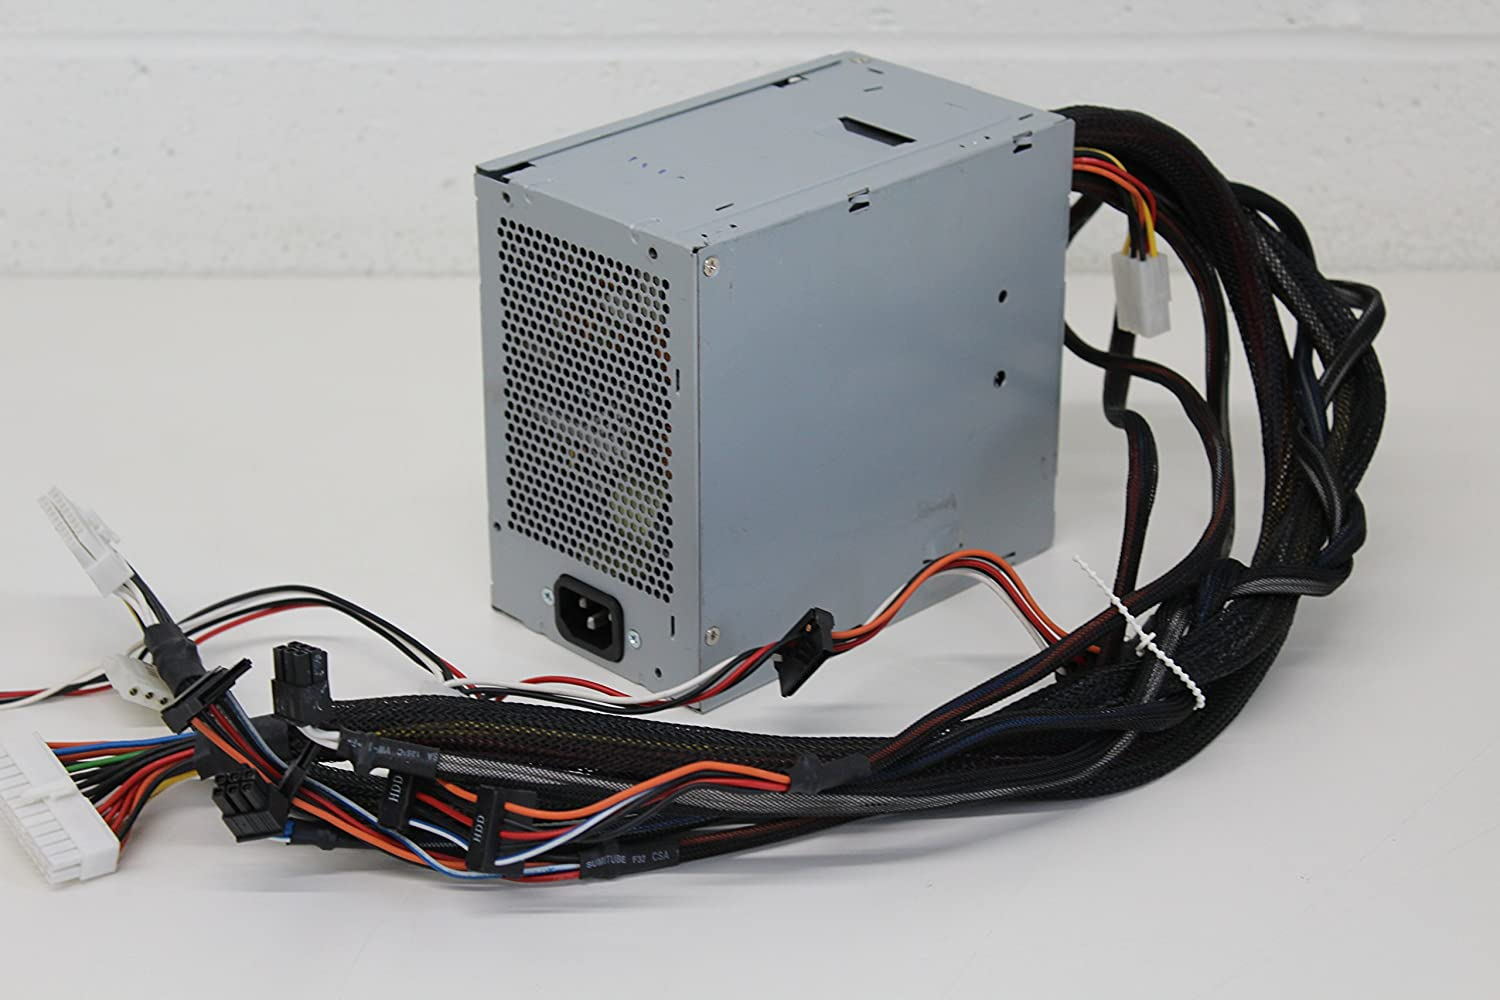 Amazon.com: Genuine Dell MG309 750W Power Supply For XPS 700, XPS 710, XPS  720 Systems, Identical Dell Part Numbers: NG153, DR552, Model Numbers:  H750P-00, ...